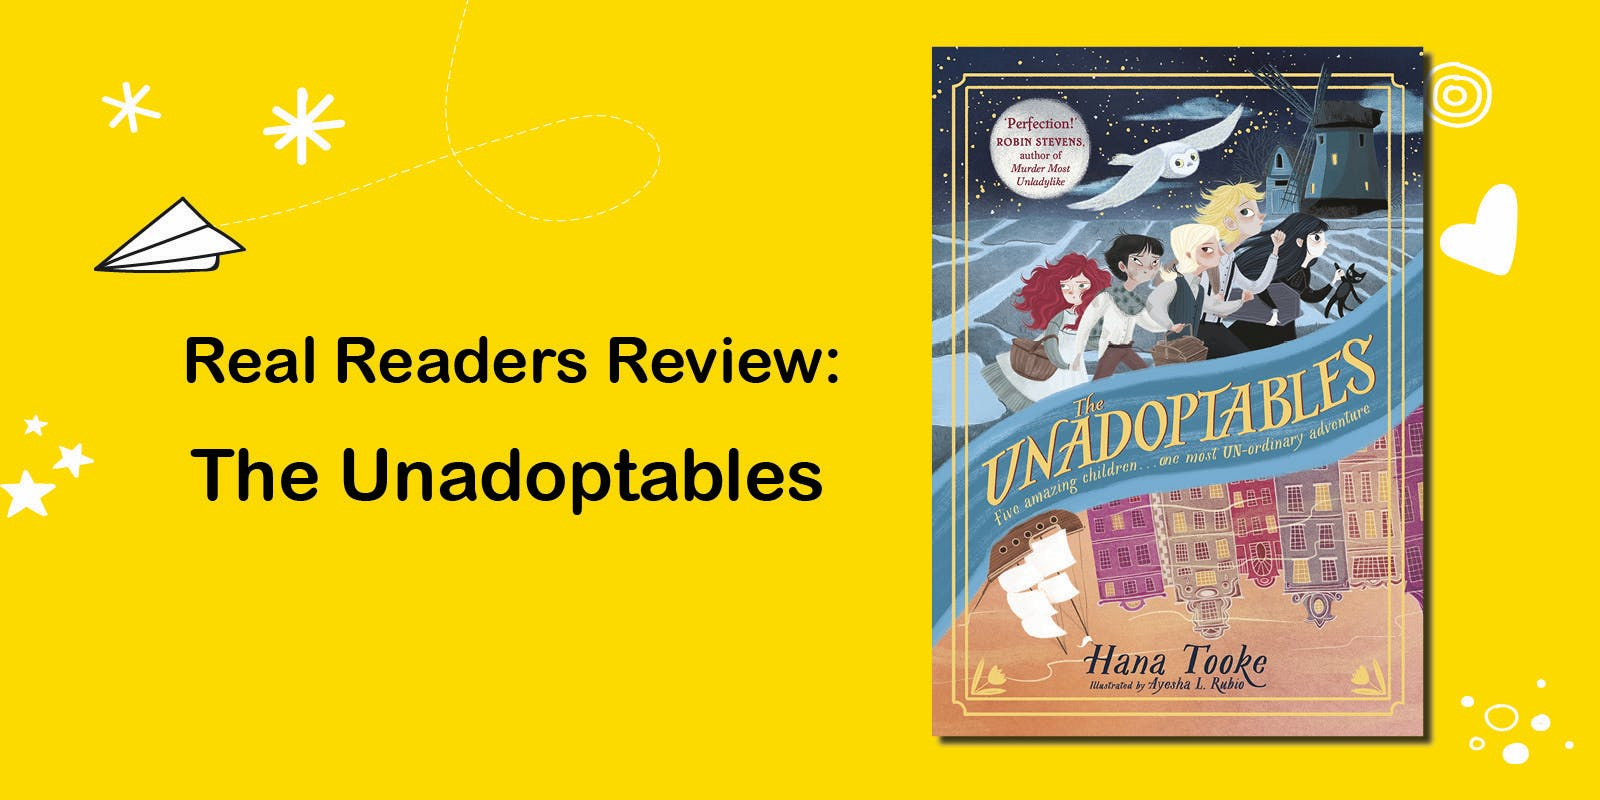 Real readers review: Orphans of the Tide